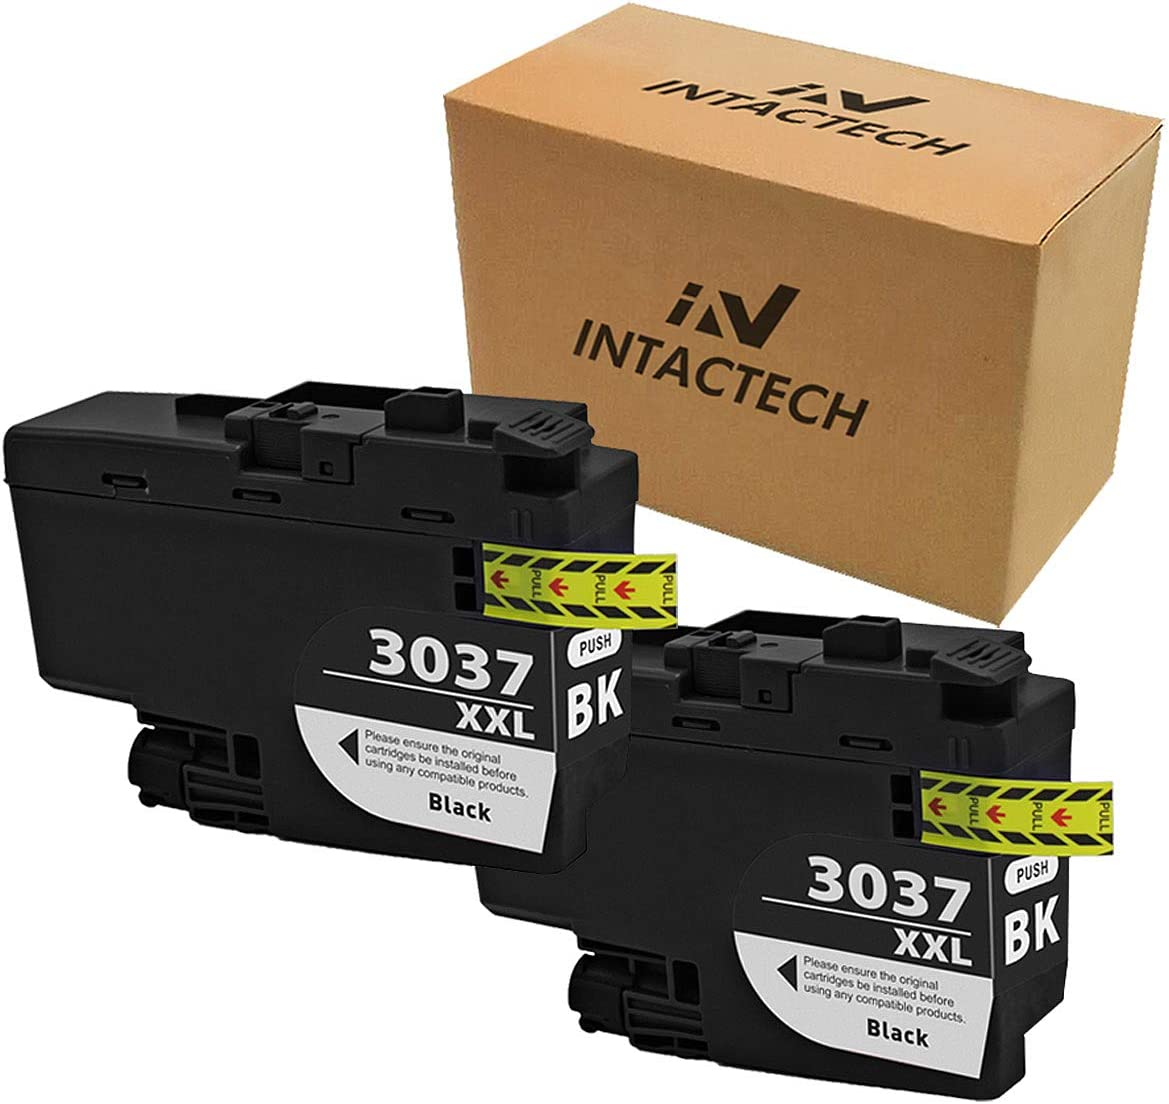 MFC-J6545DW BCMY, 4 Pack MFC-J5945DW ZET Remanufactured Ink Cartridge Replacement for Brother LC3037 XXL LC3037BK LC3037C LC3037M LC3037Y Used in Brother MFC-J5845DW MFC-J6945DW Printers